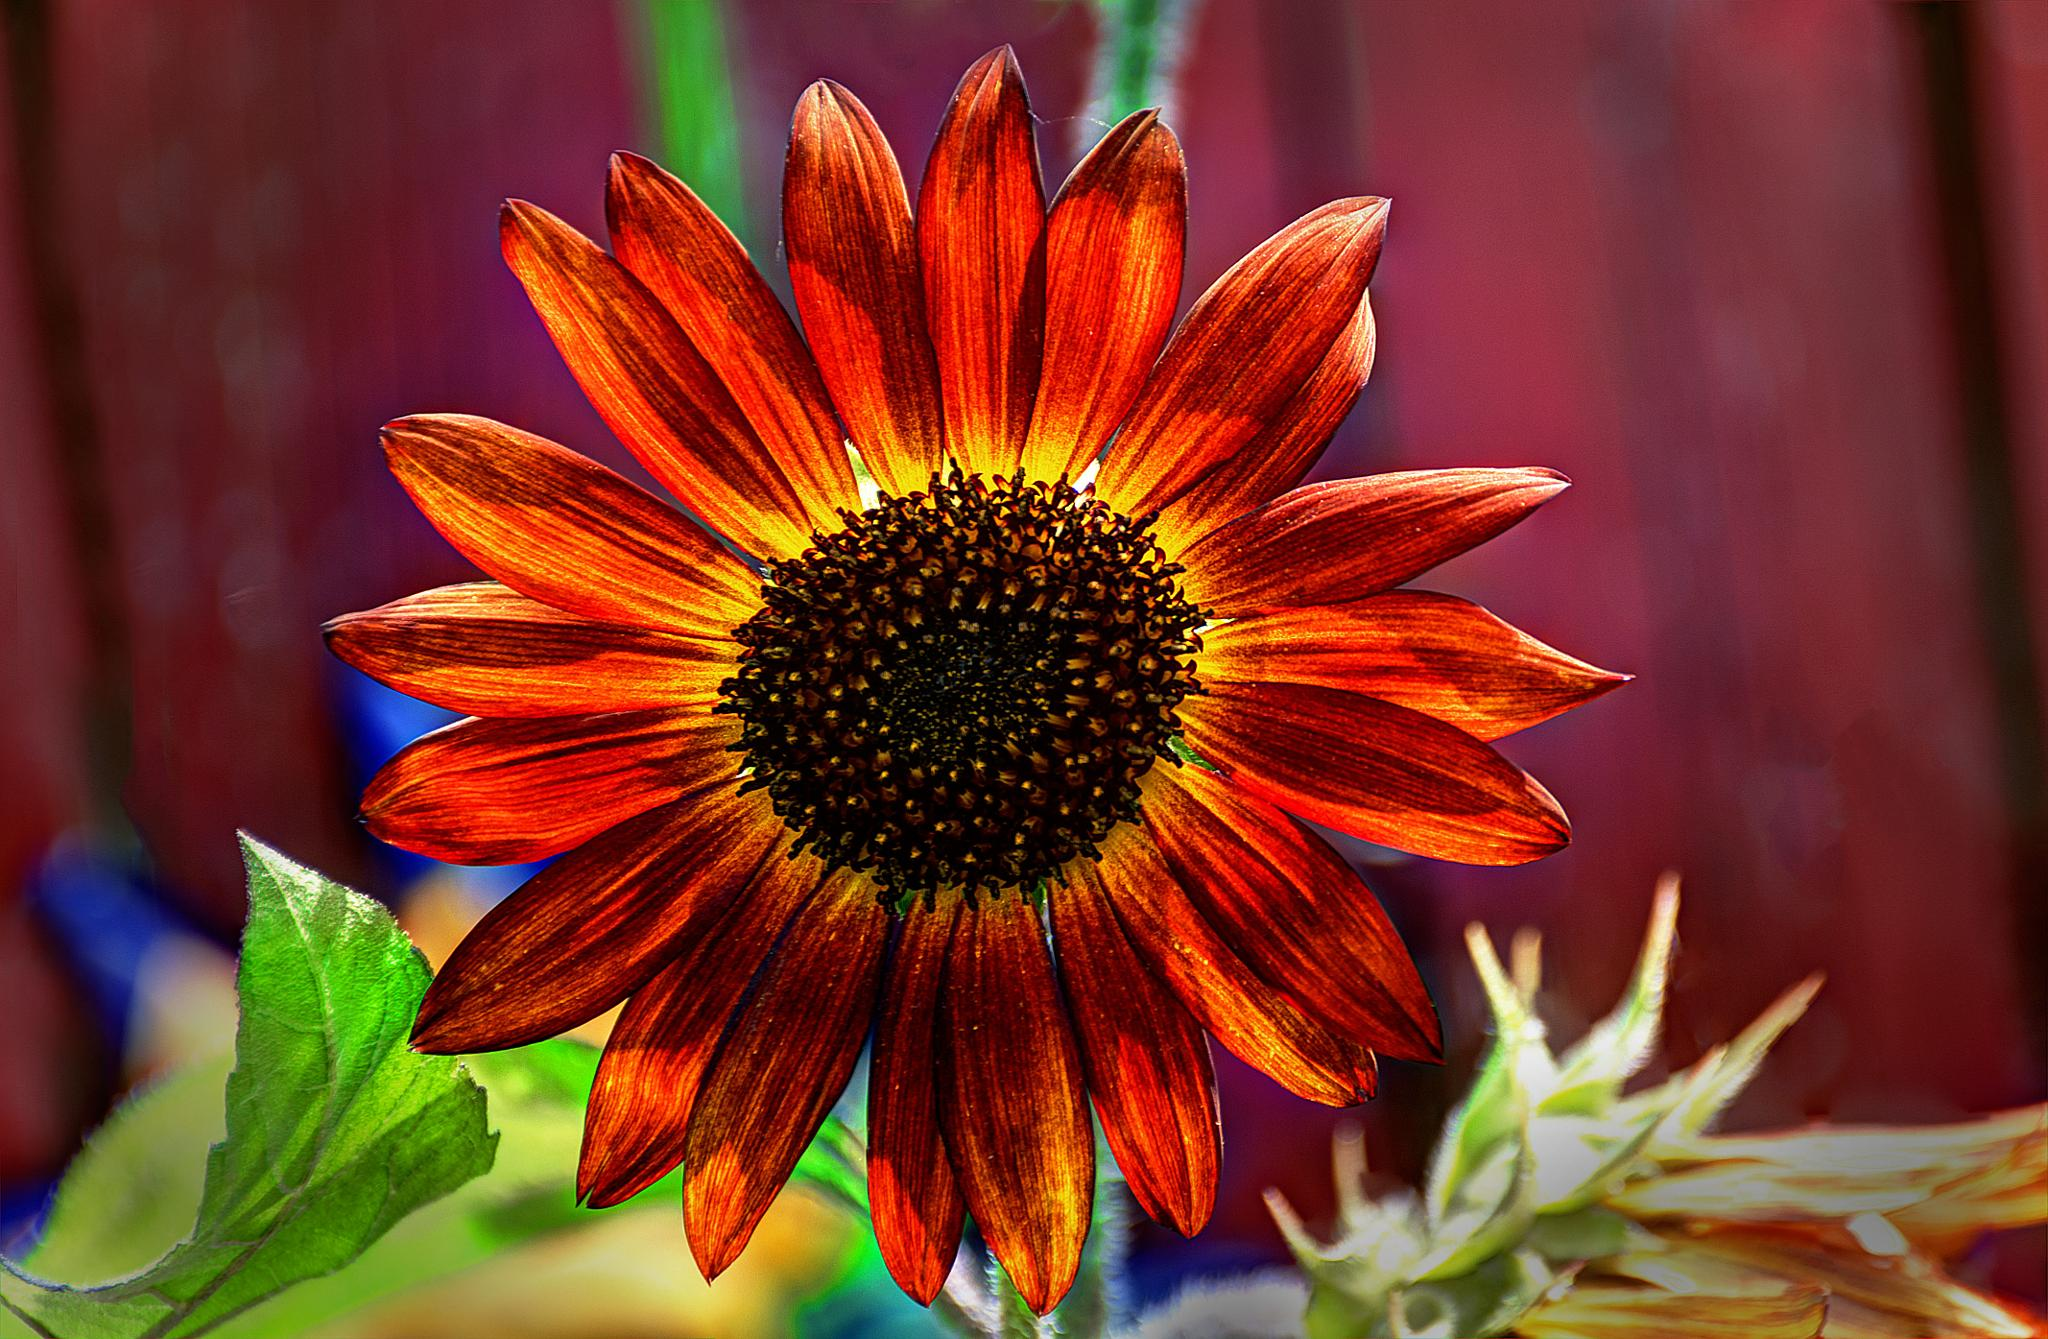 Fall Sunflower by J. Philip Larson Photography